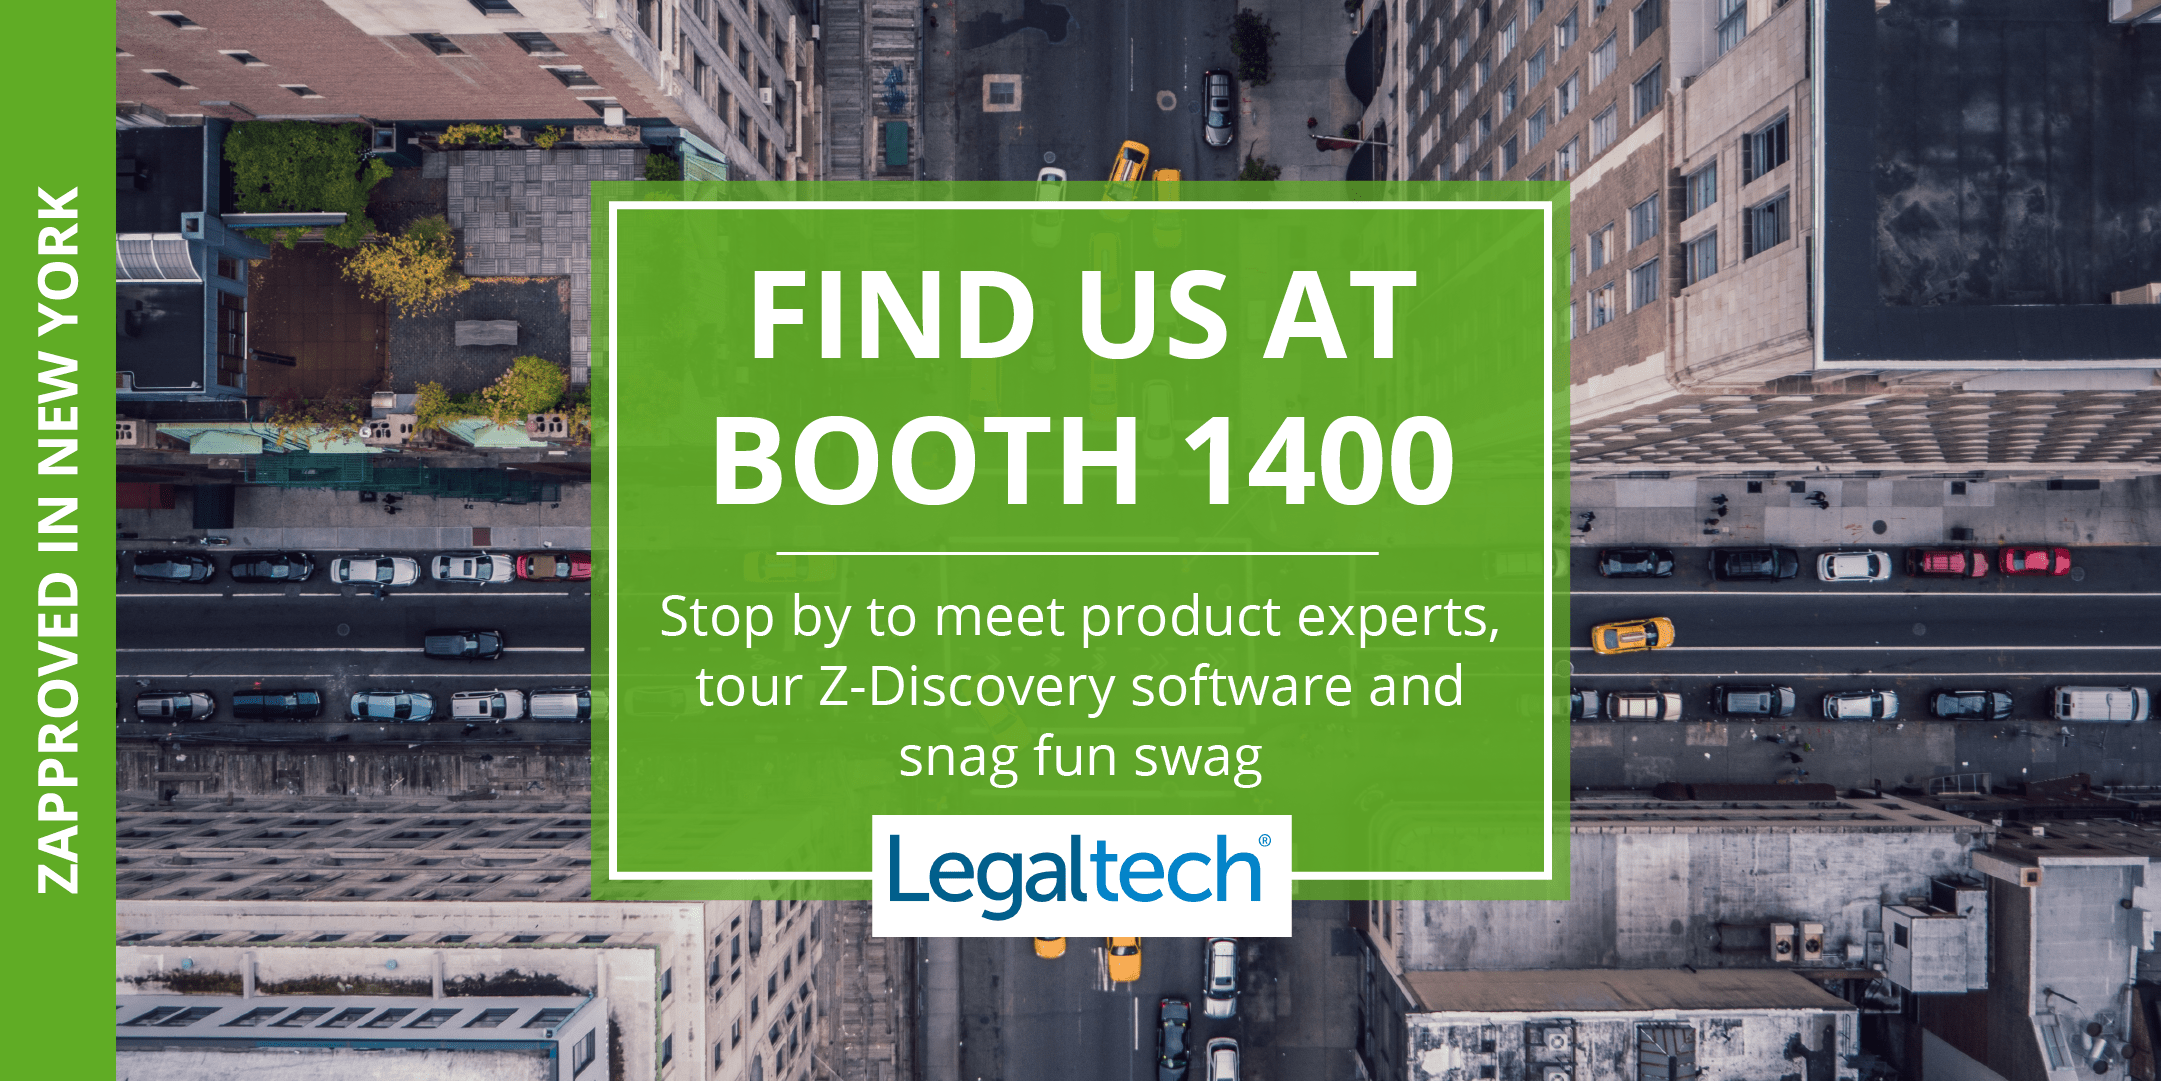 Zapproved at Legaltech 2018 in New York